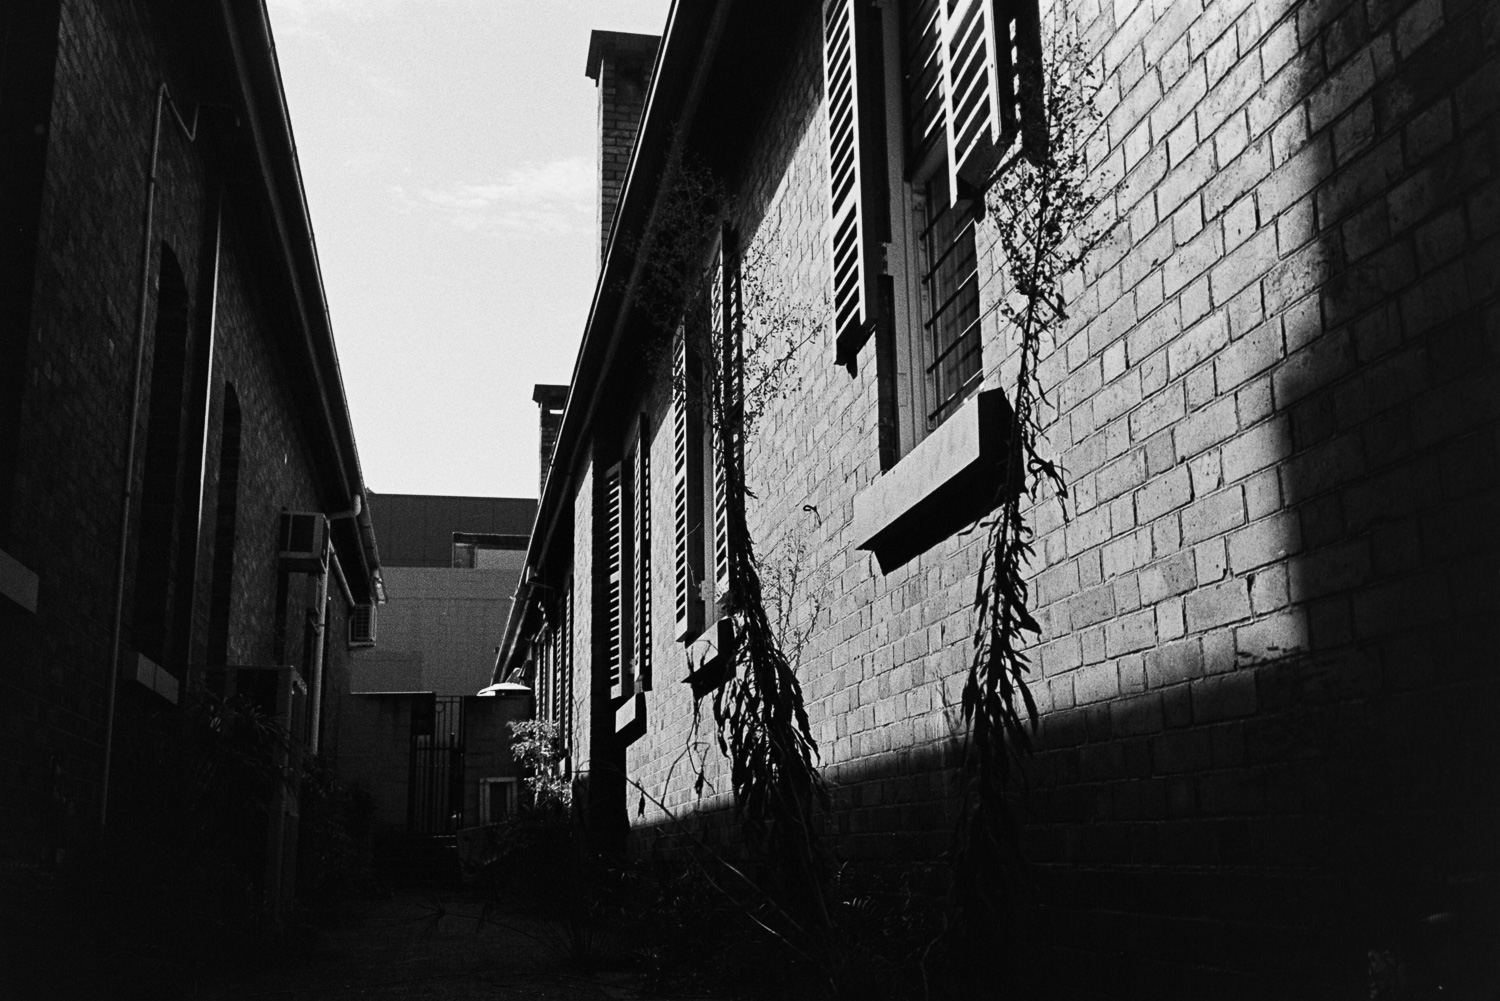 20170326_ROLL_125_023-Nick-Bedford,-Photographer-Black and White, Brisbane, Film, Kodak Tri-X 400, Leica M7, Rodinal, Street Photography.jpg